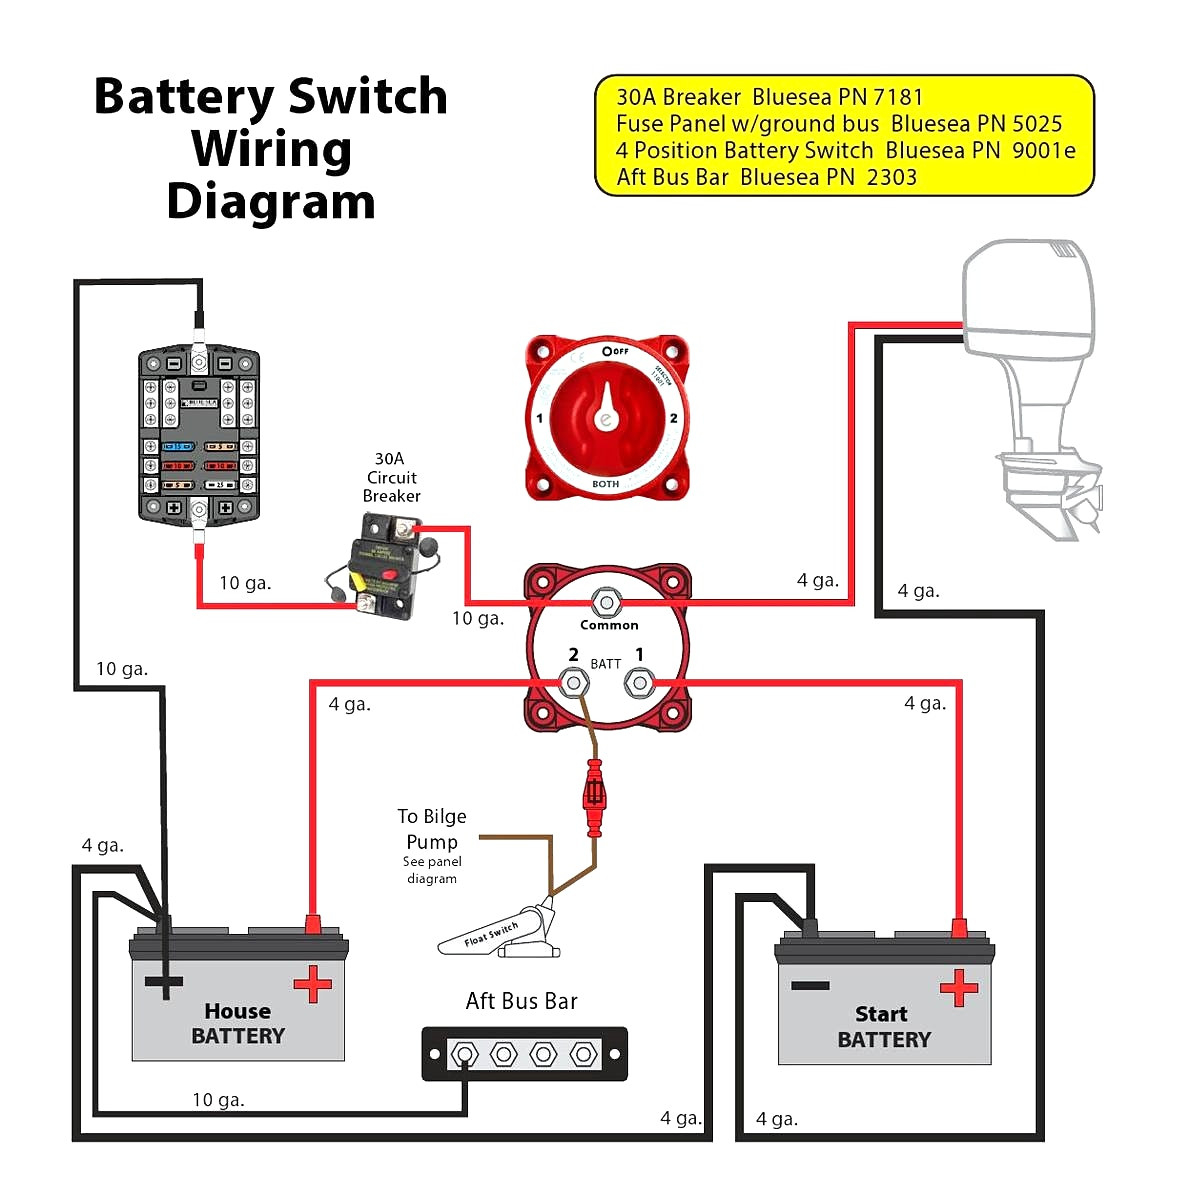 how to wire an isolator switch wiring diagram 2006 ford f150 battery manufacturers collection